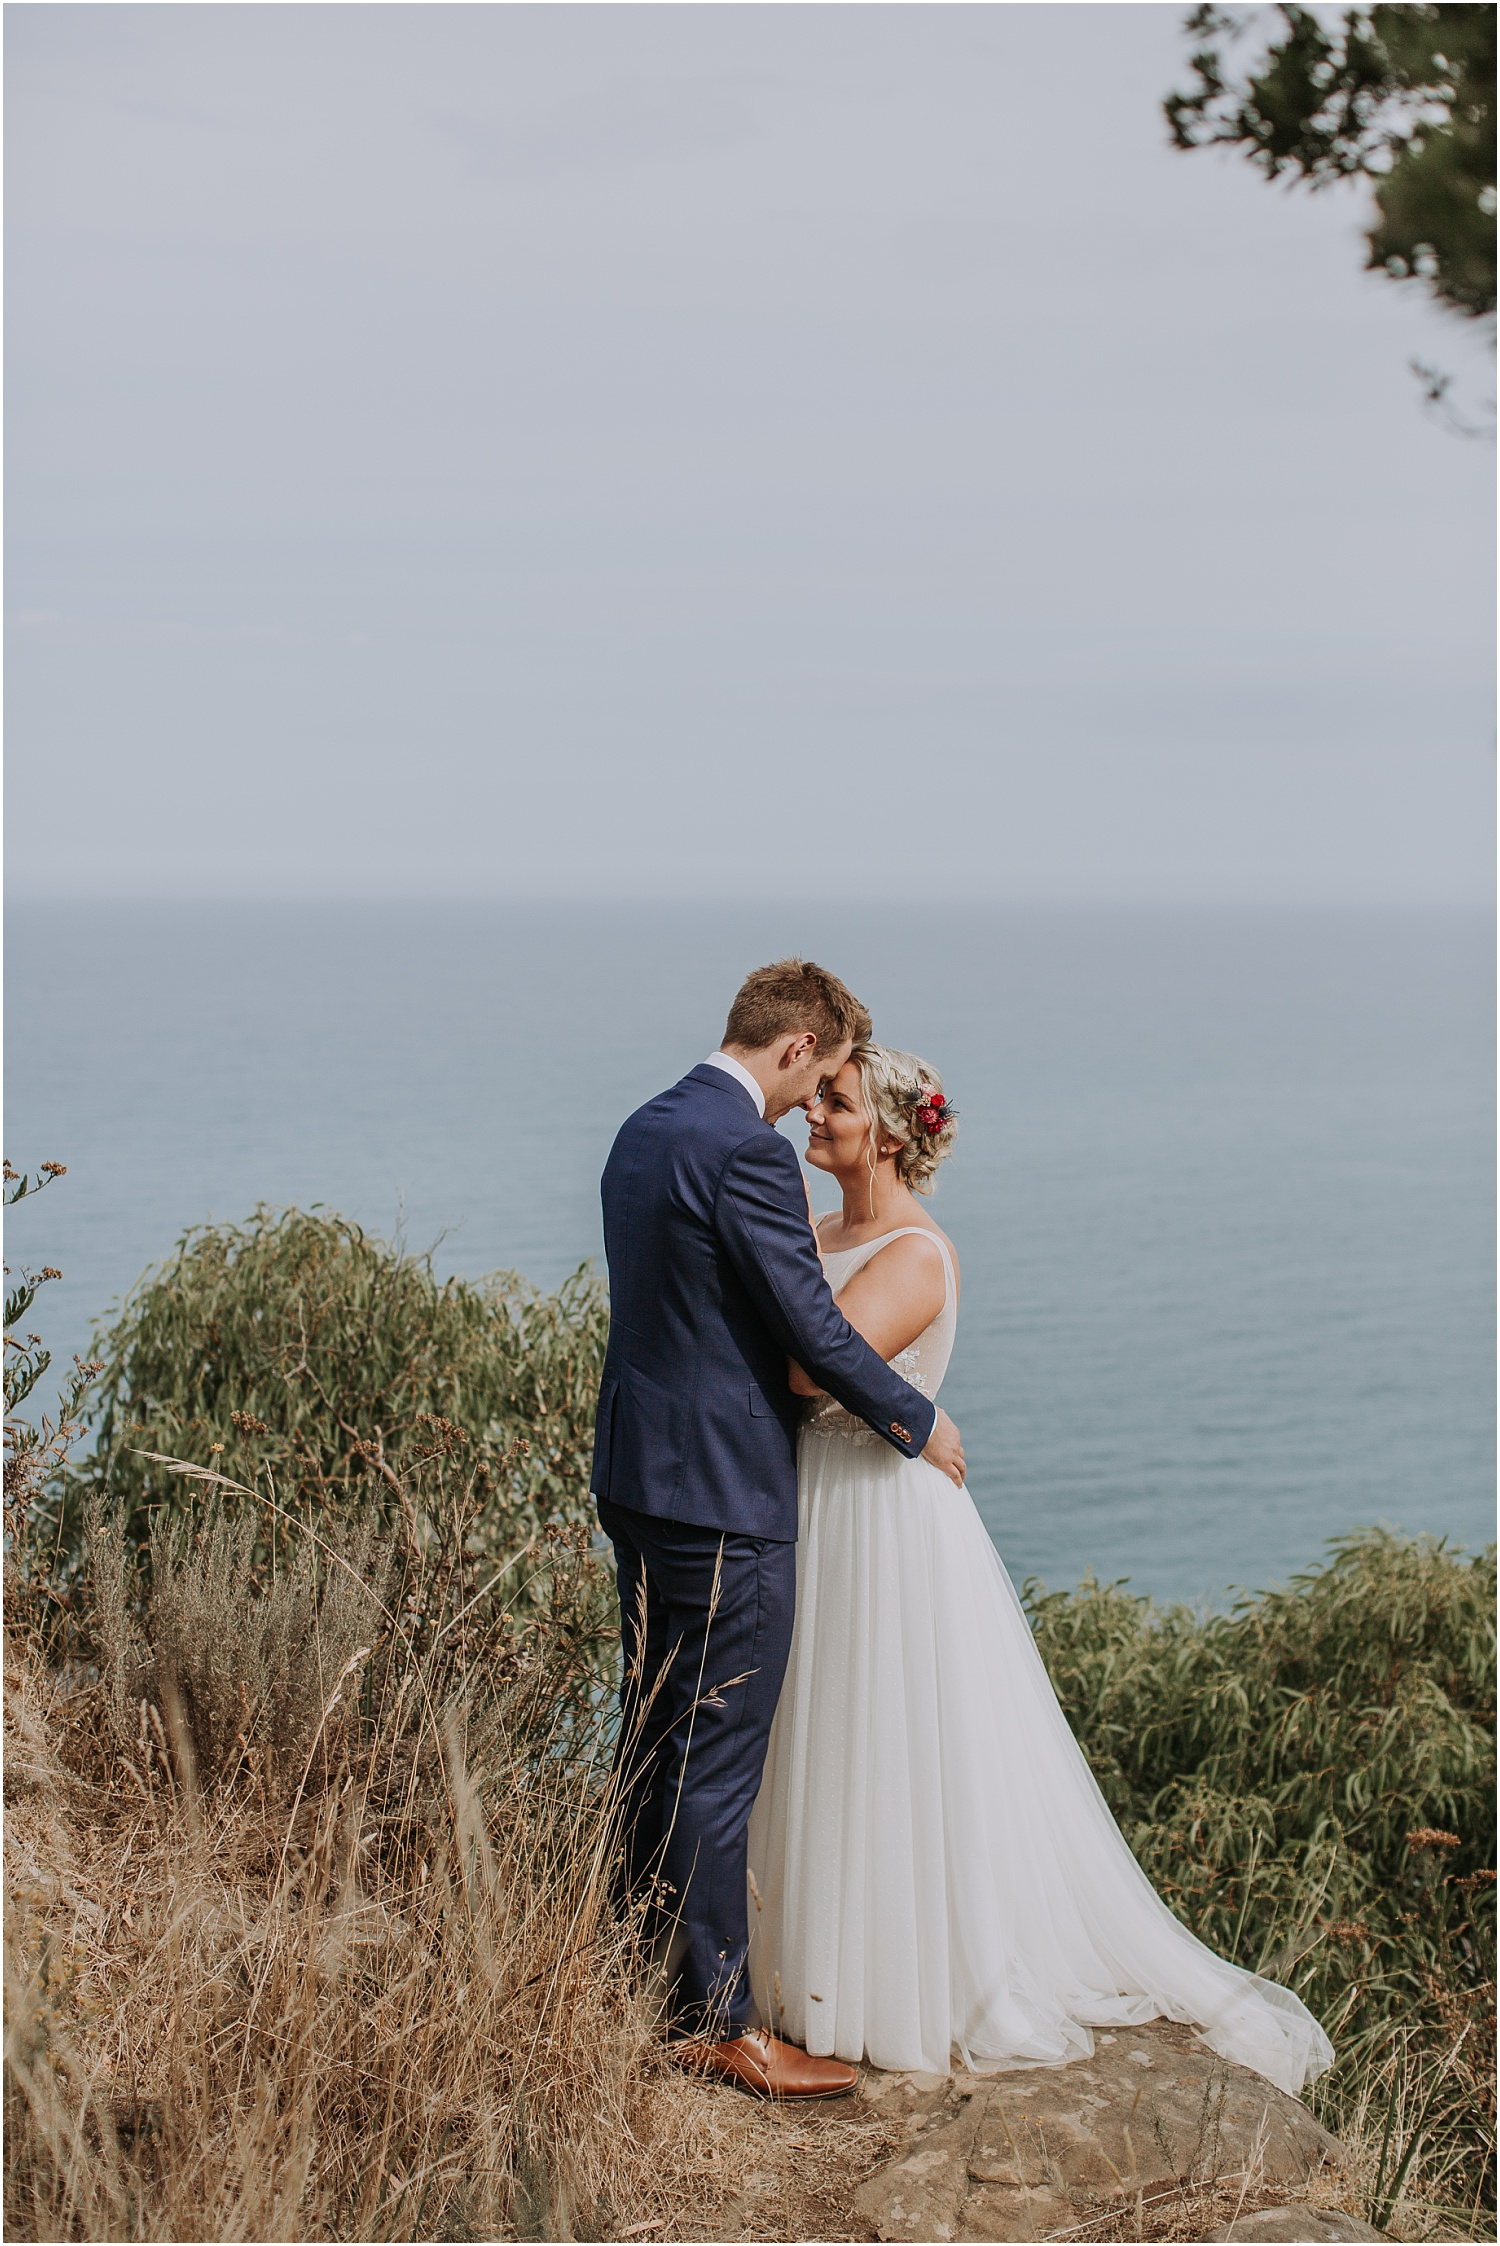 Ainslee and Warwick's elopement at Erskin Falls and the Lorne Beach Pavilion on the Great Ocean Road._0089.jpg